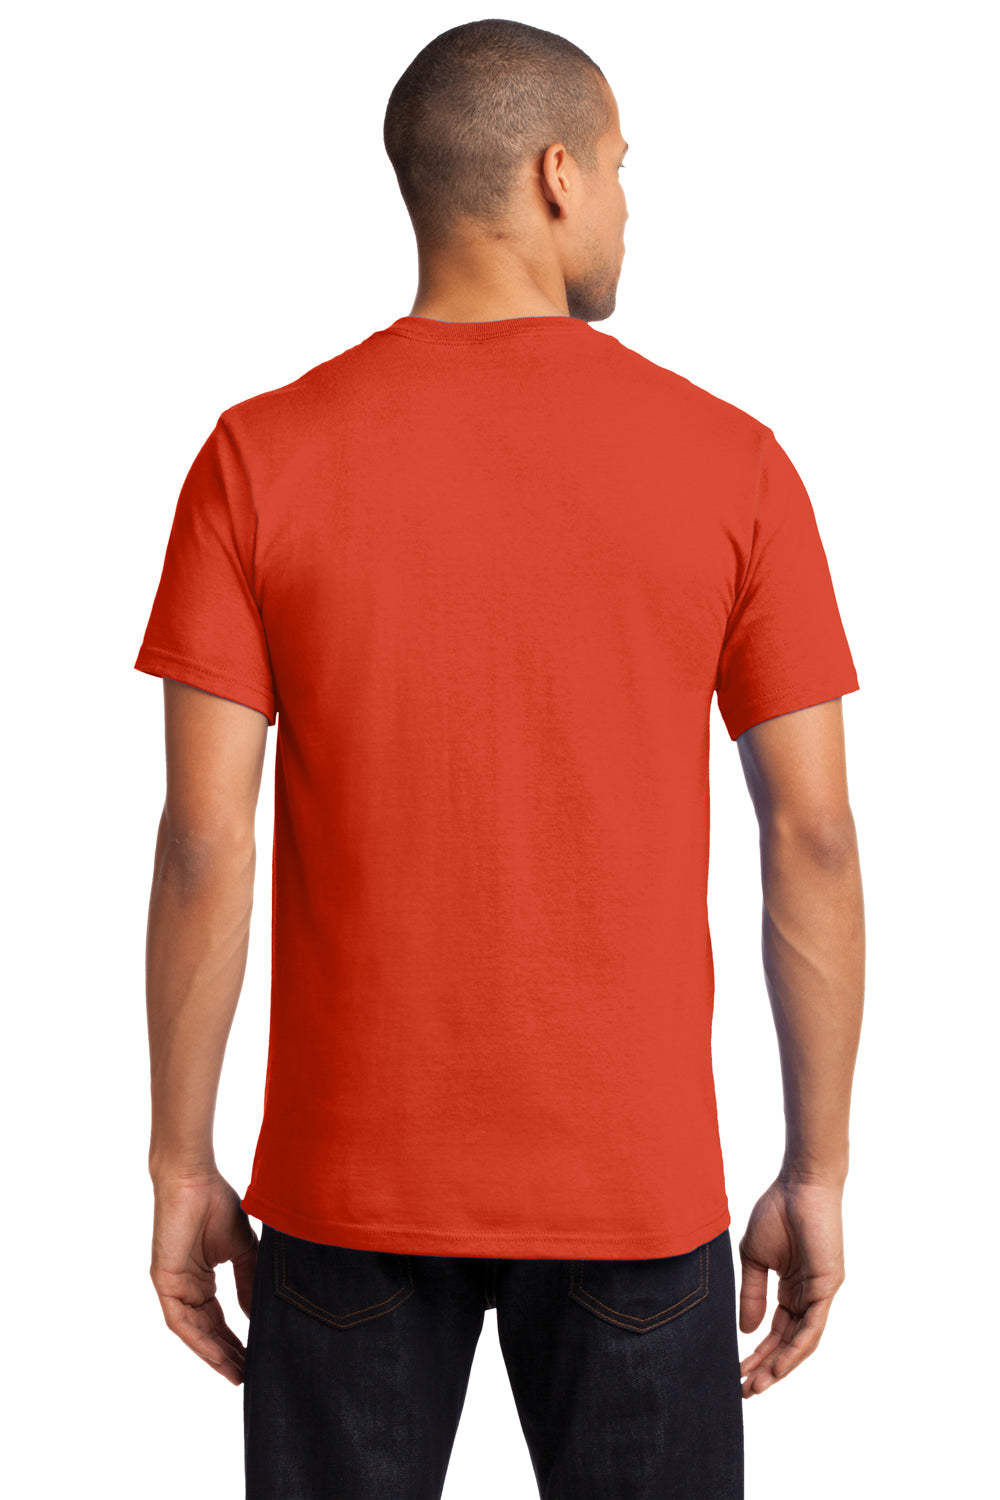 Port & Company PC61P Mens Essential Short Sleeve Crewneck T-Shirt w/ Pocket Orange Back